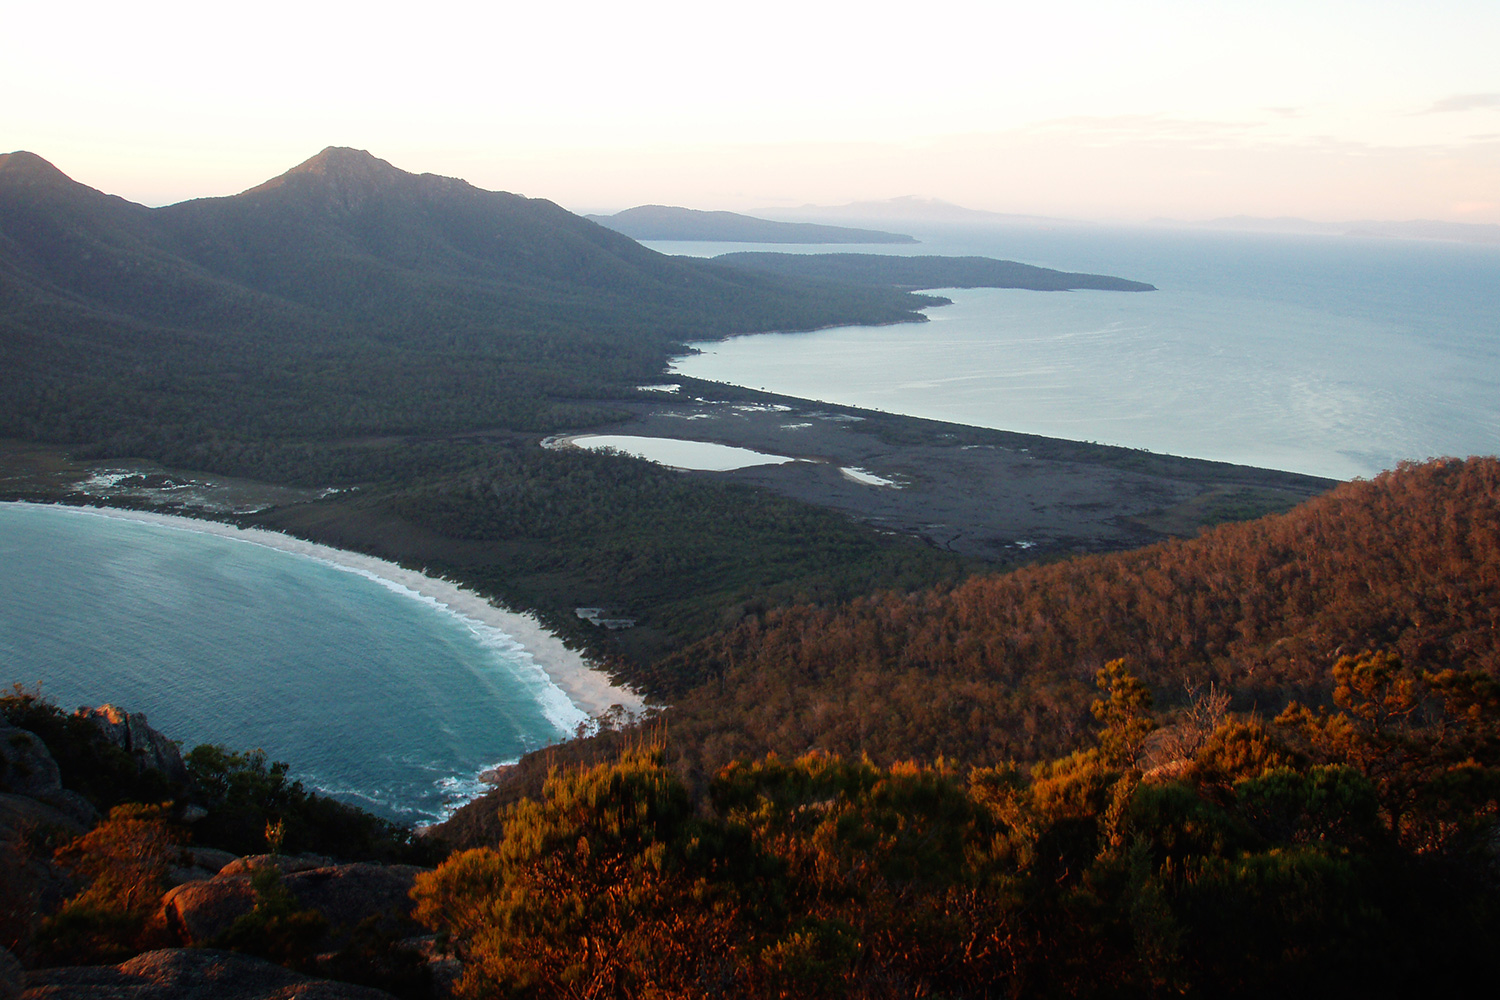 View of Wine Glass Bay from Mount Amos